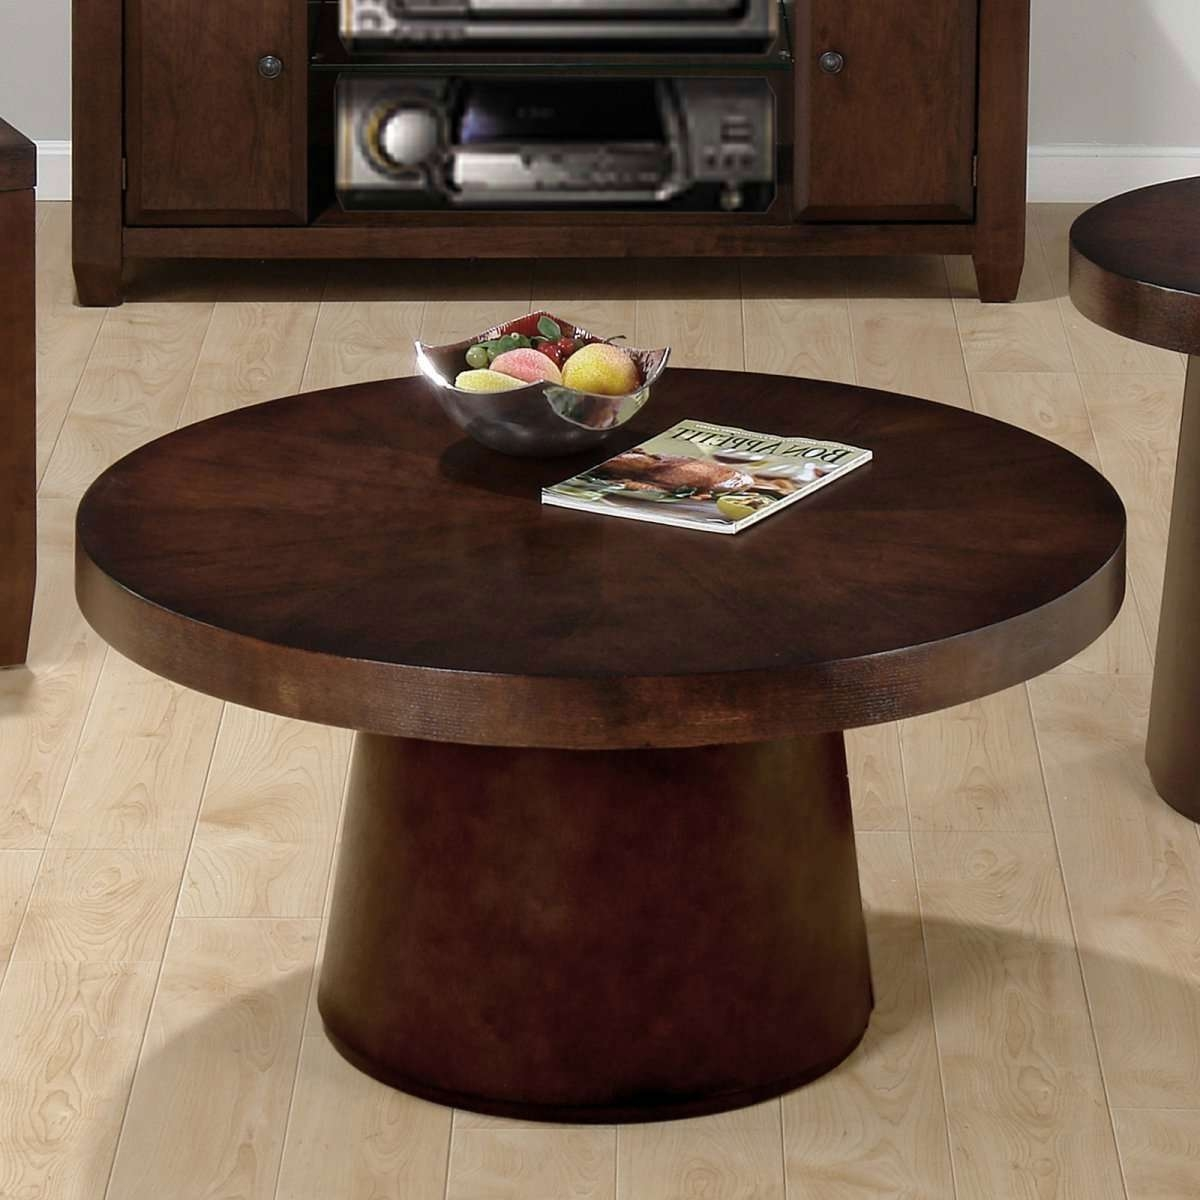 10 Best Small Round Coffee Tables For Round Coffee Tables Round With Most Recent Small Round Coffee Tables (View 2 of 20)